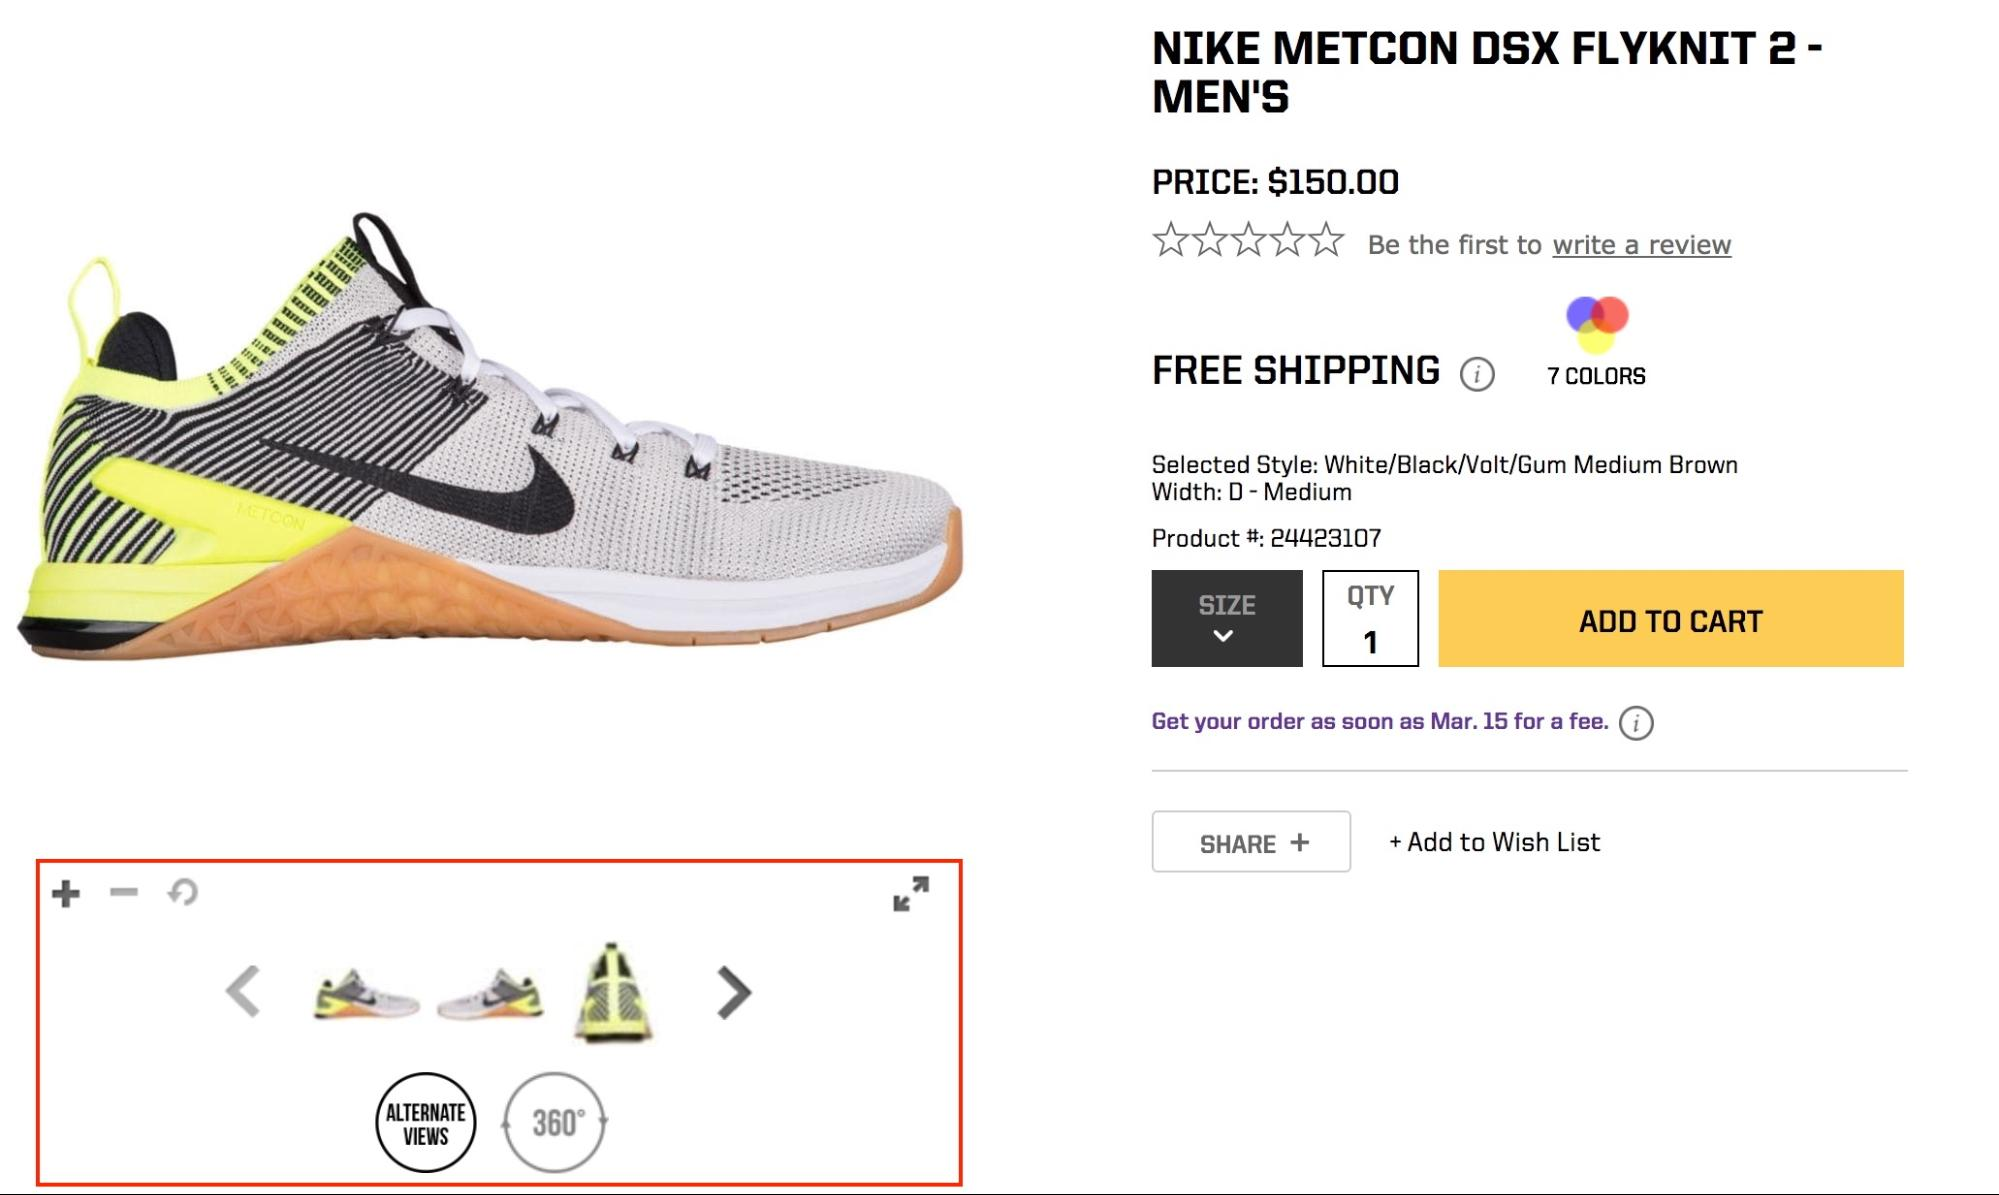 Screenshot showing ecommerce product page